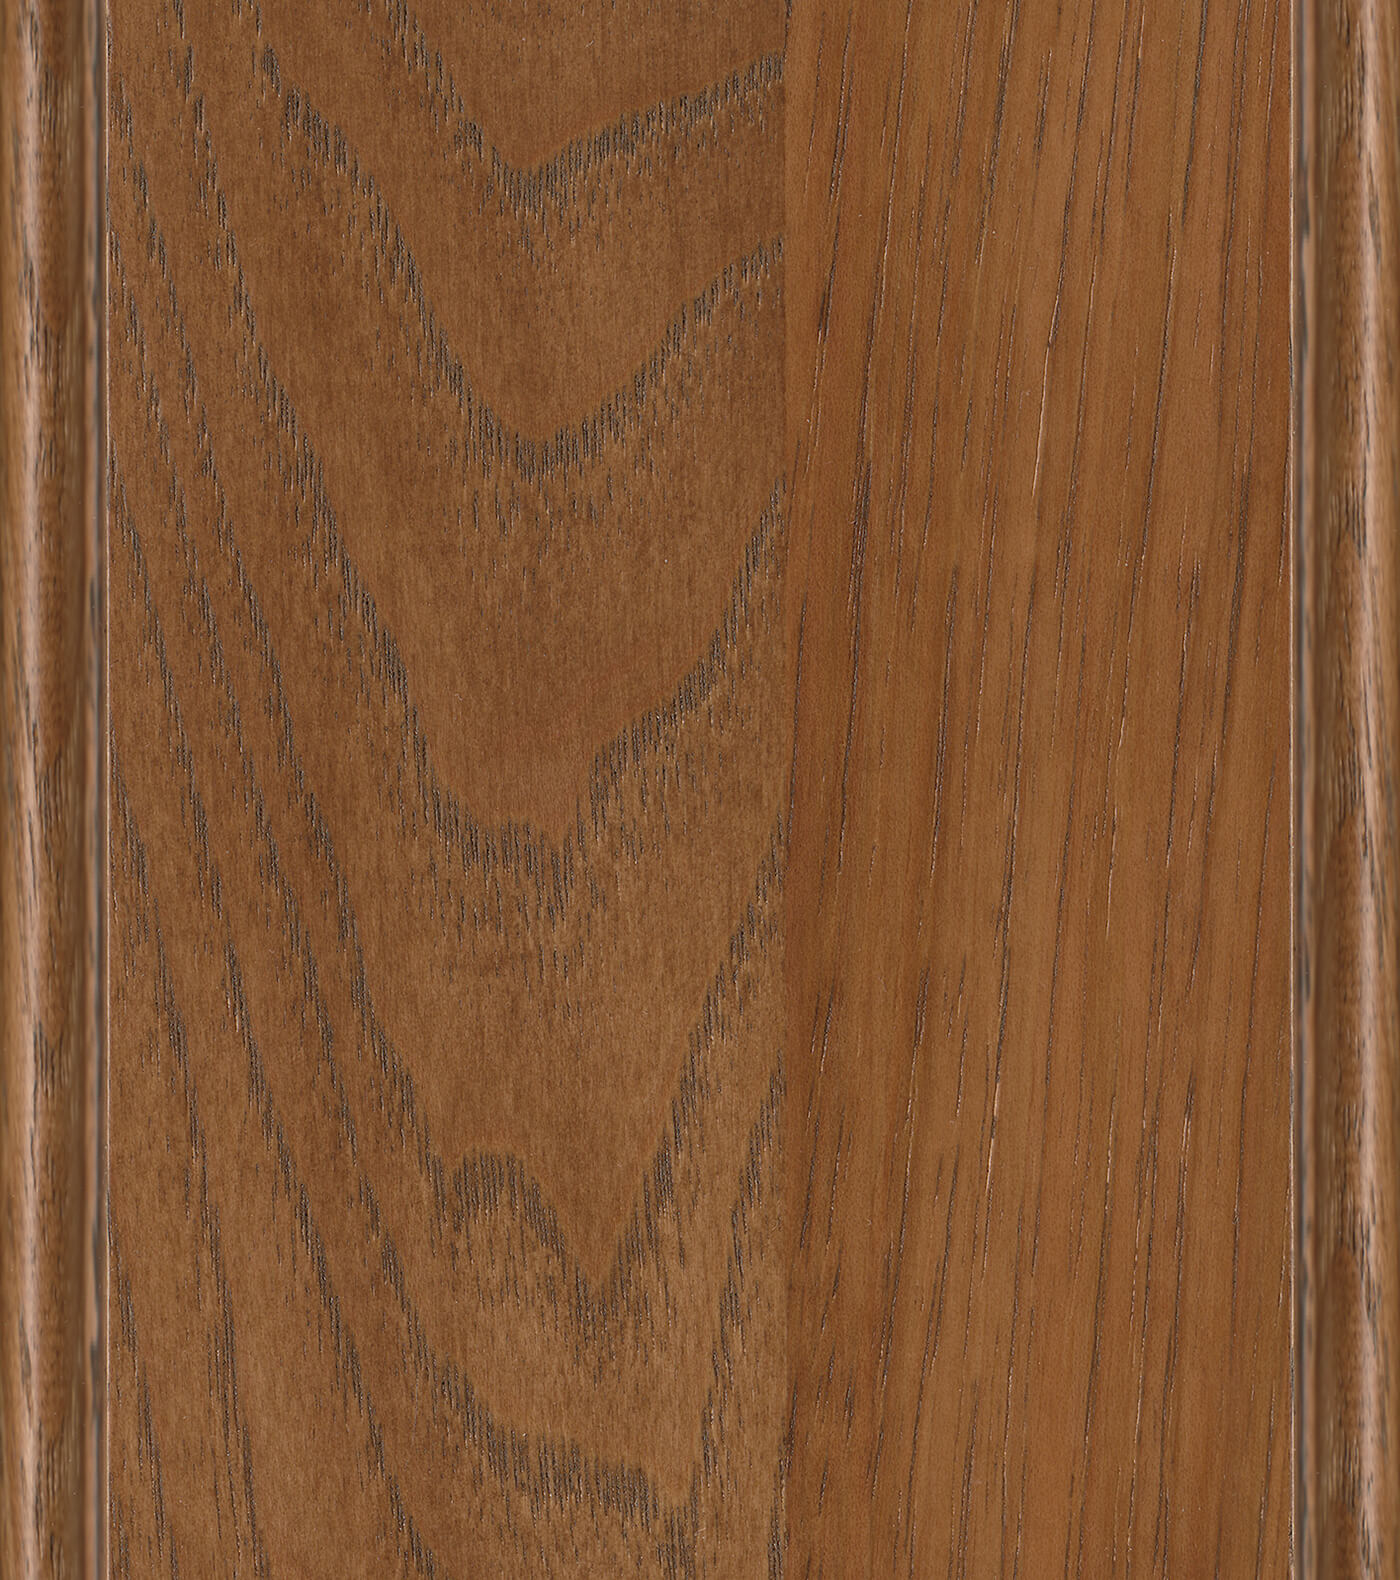 Toast Stain on Hickory or Rustic Hickory